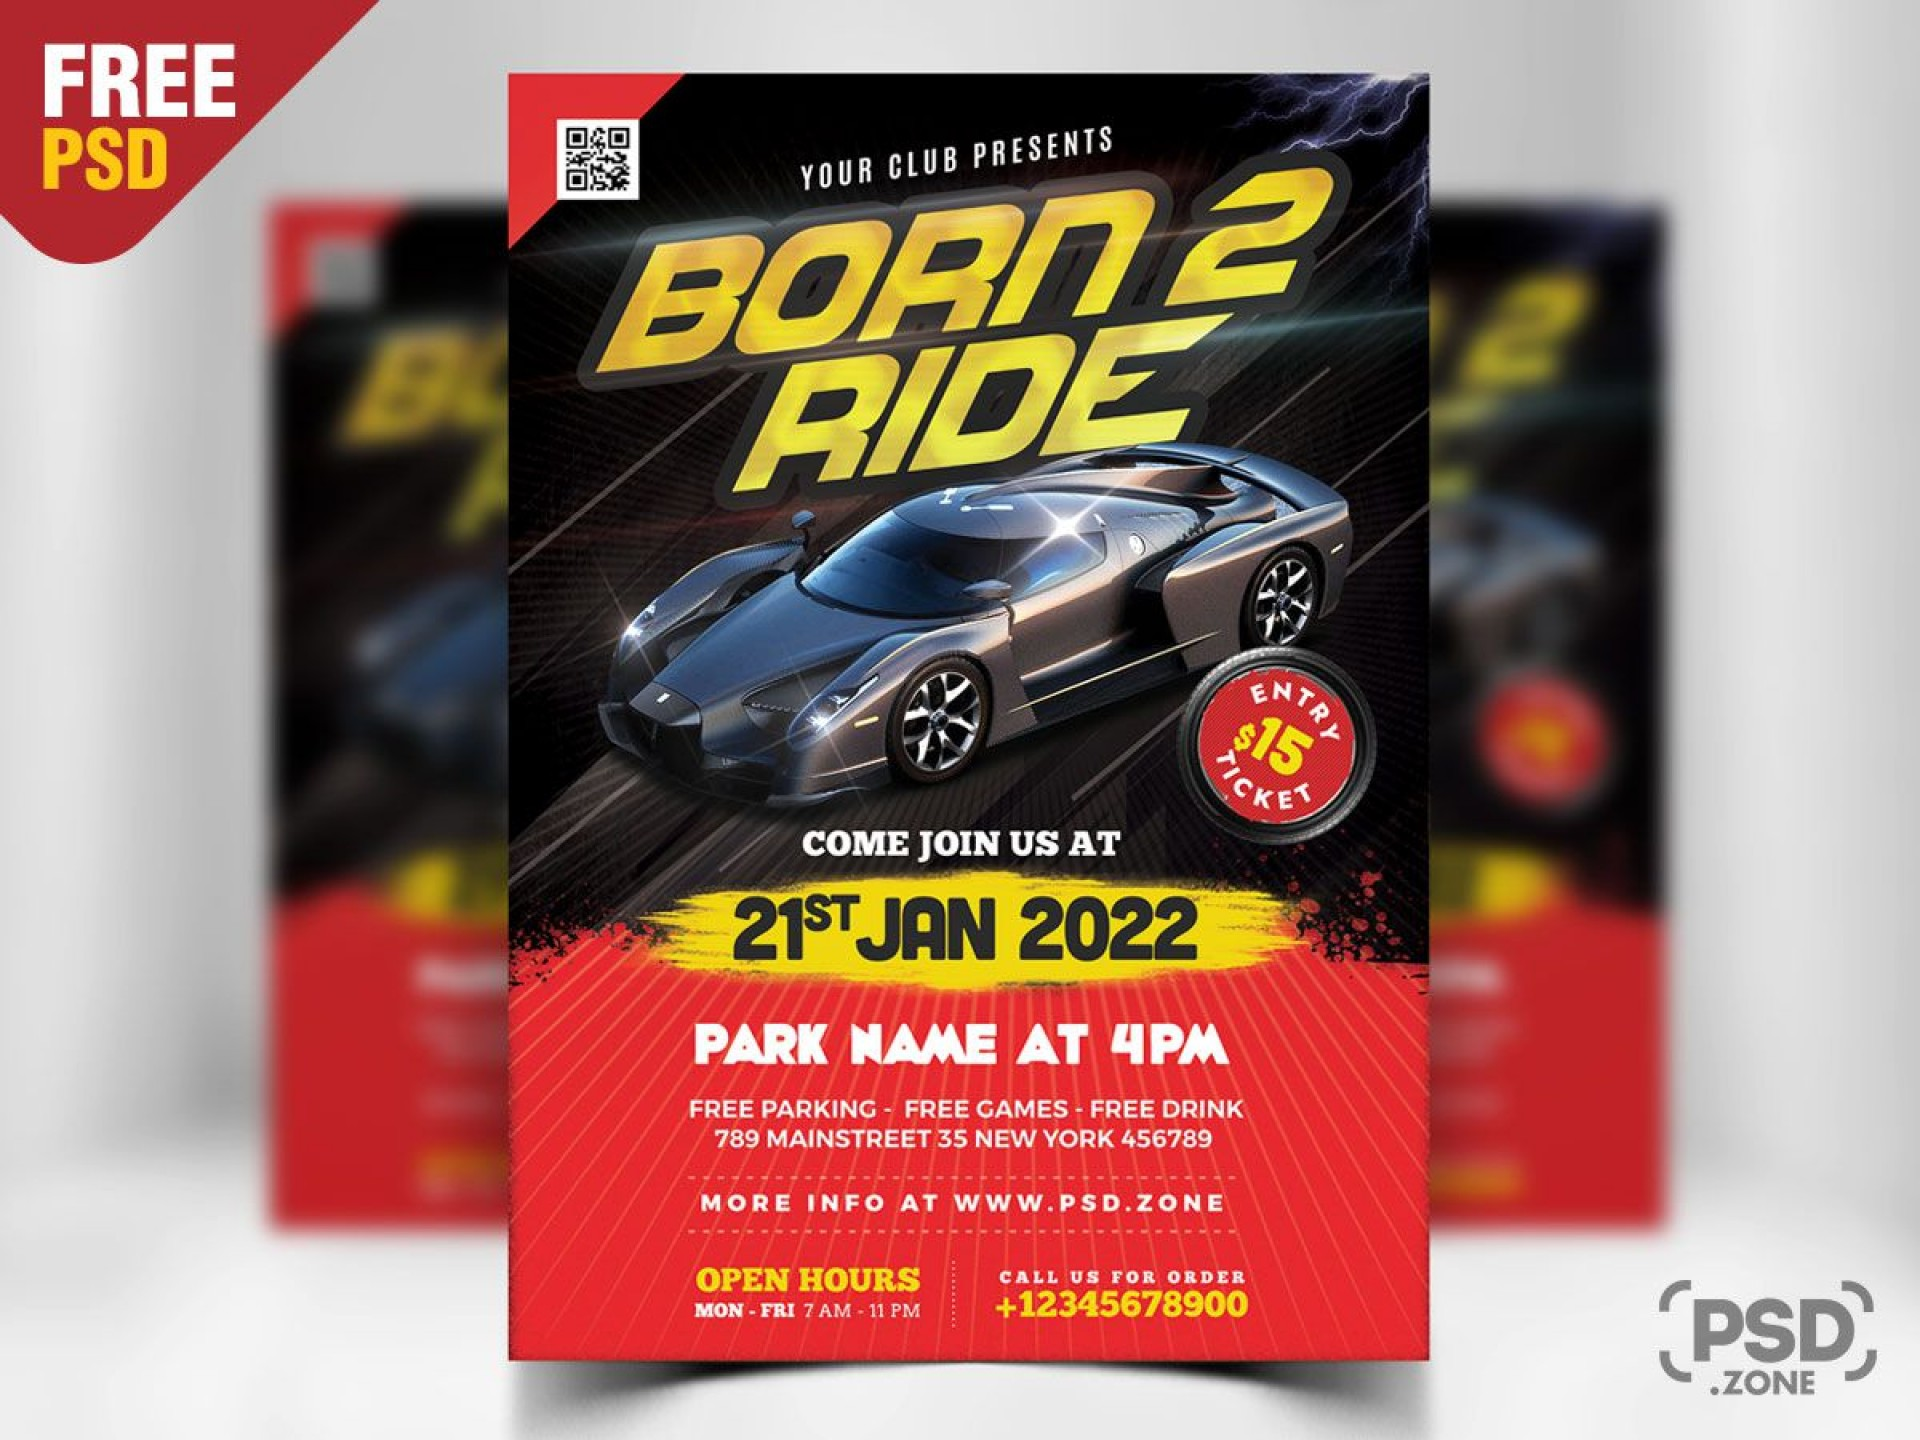 004 Fantastic Free Car Show Flyer Template High Definition  Psd And Bike1920